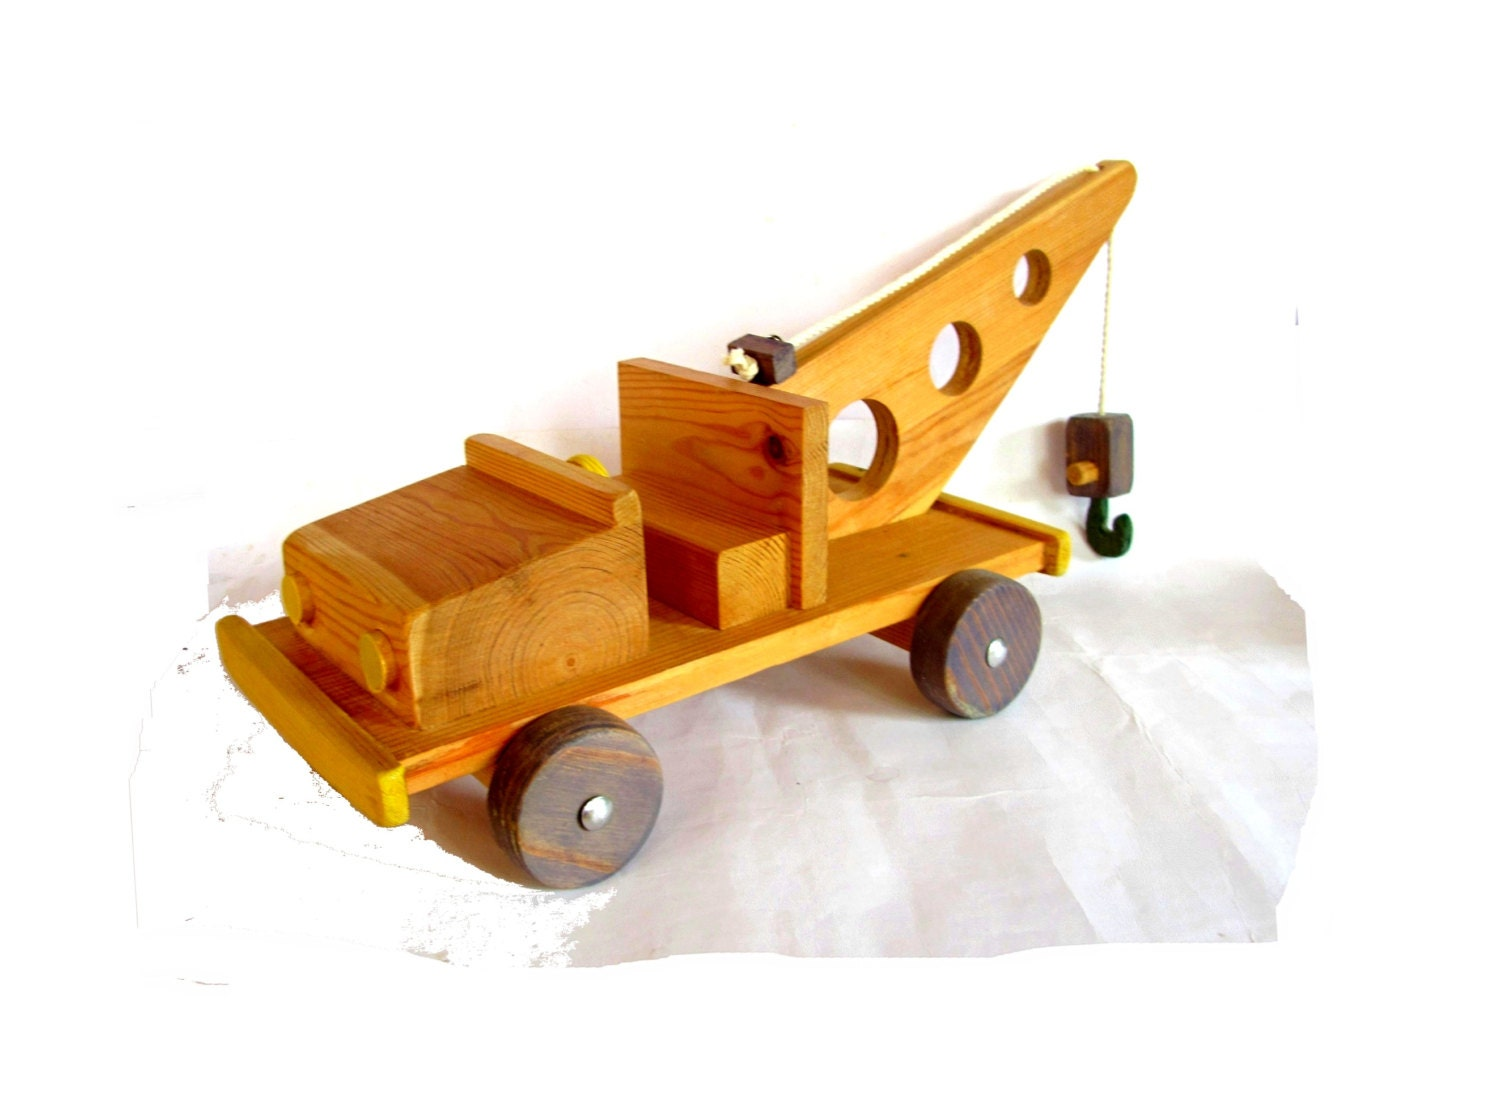 Toy Trucks For Boys : Wood toy wooden hand crafted truck boys